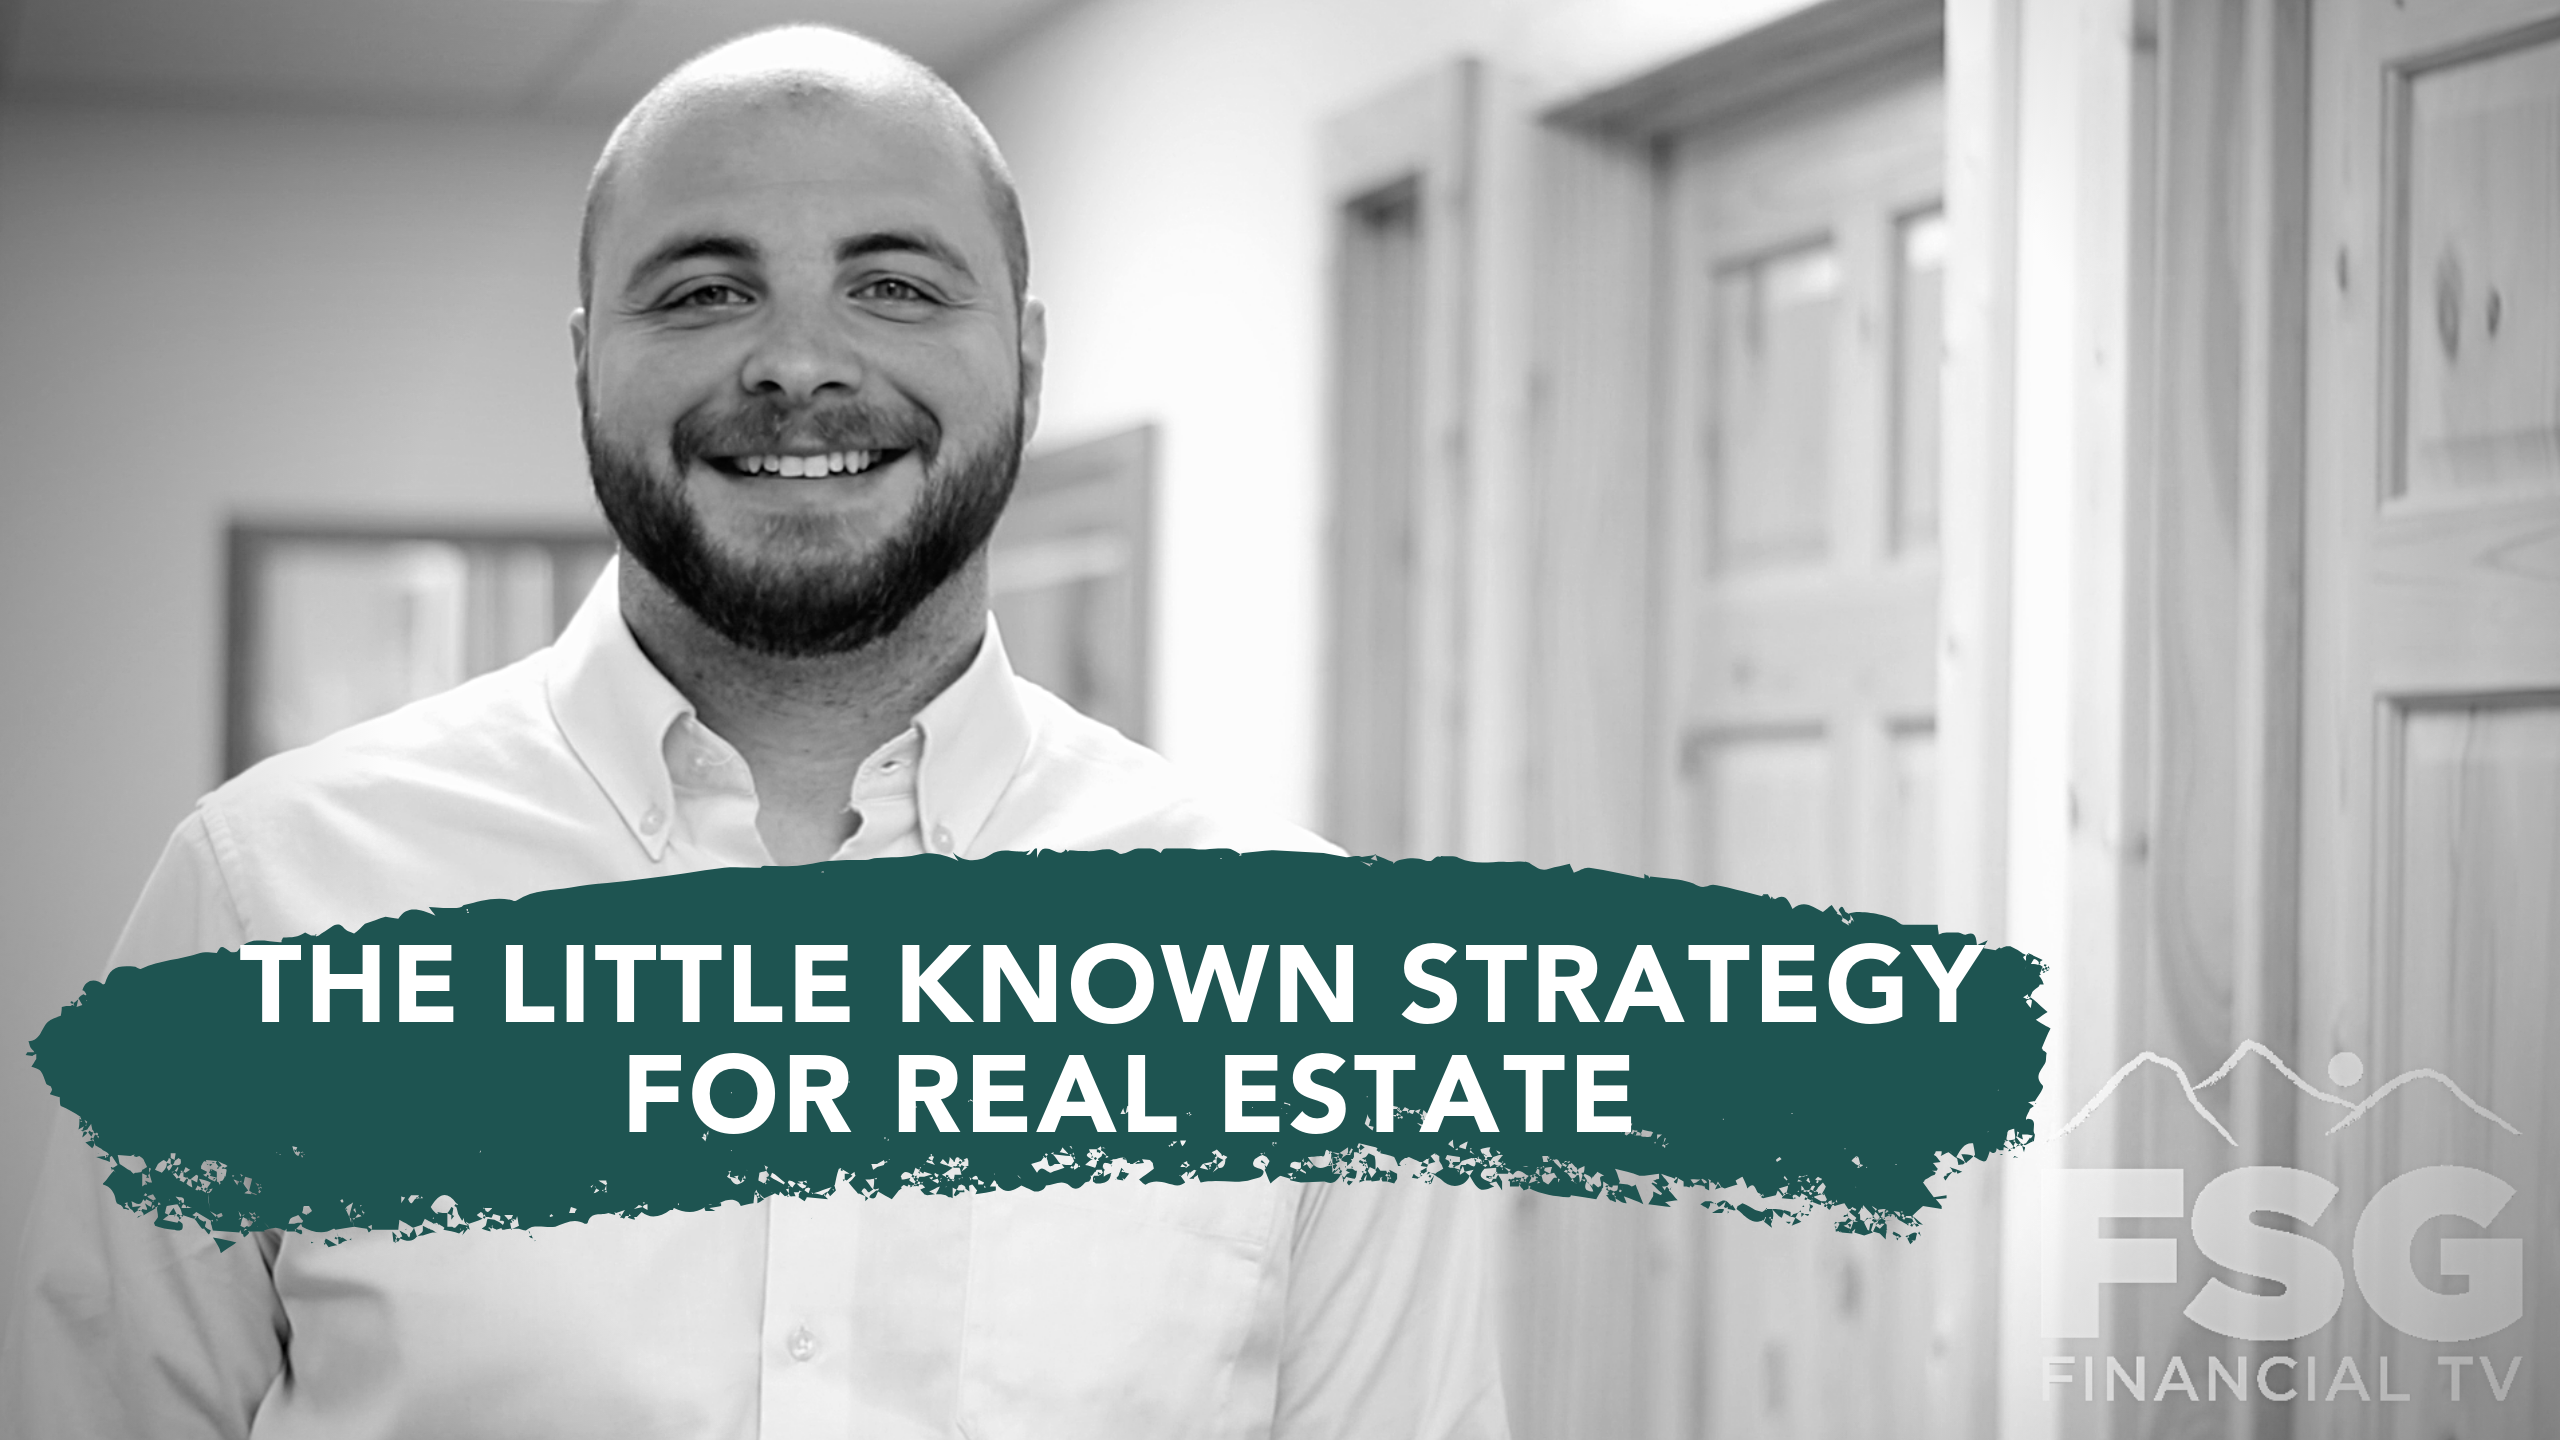 Educational Moment: The Little Known Strategy for Real Estate Thumbnail